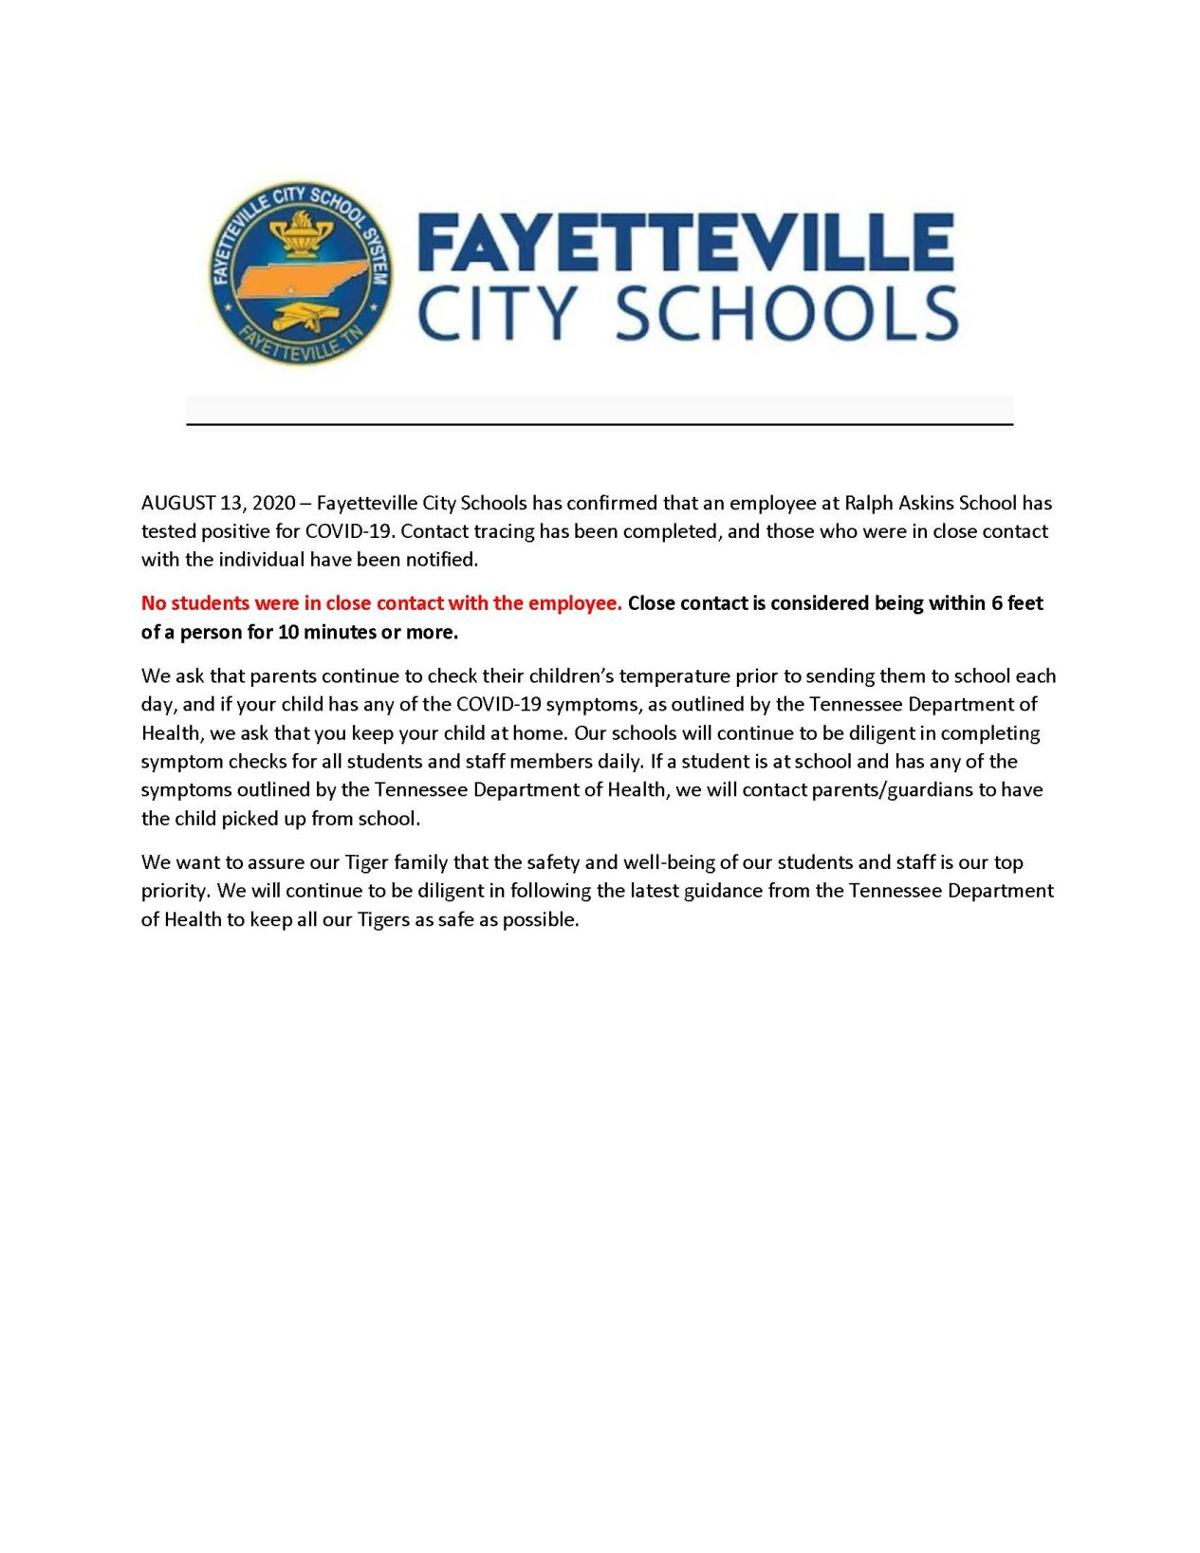 First confirmed positive COVID-19 case in Fayetteville City schools